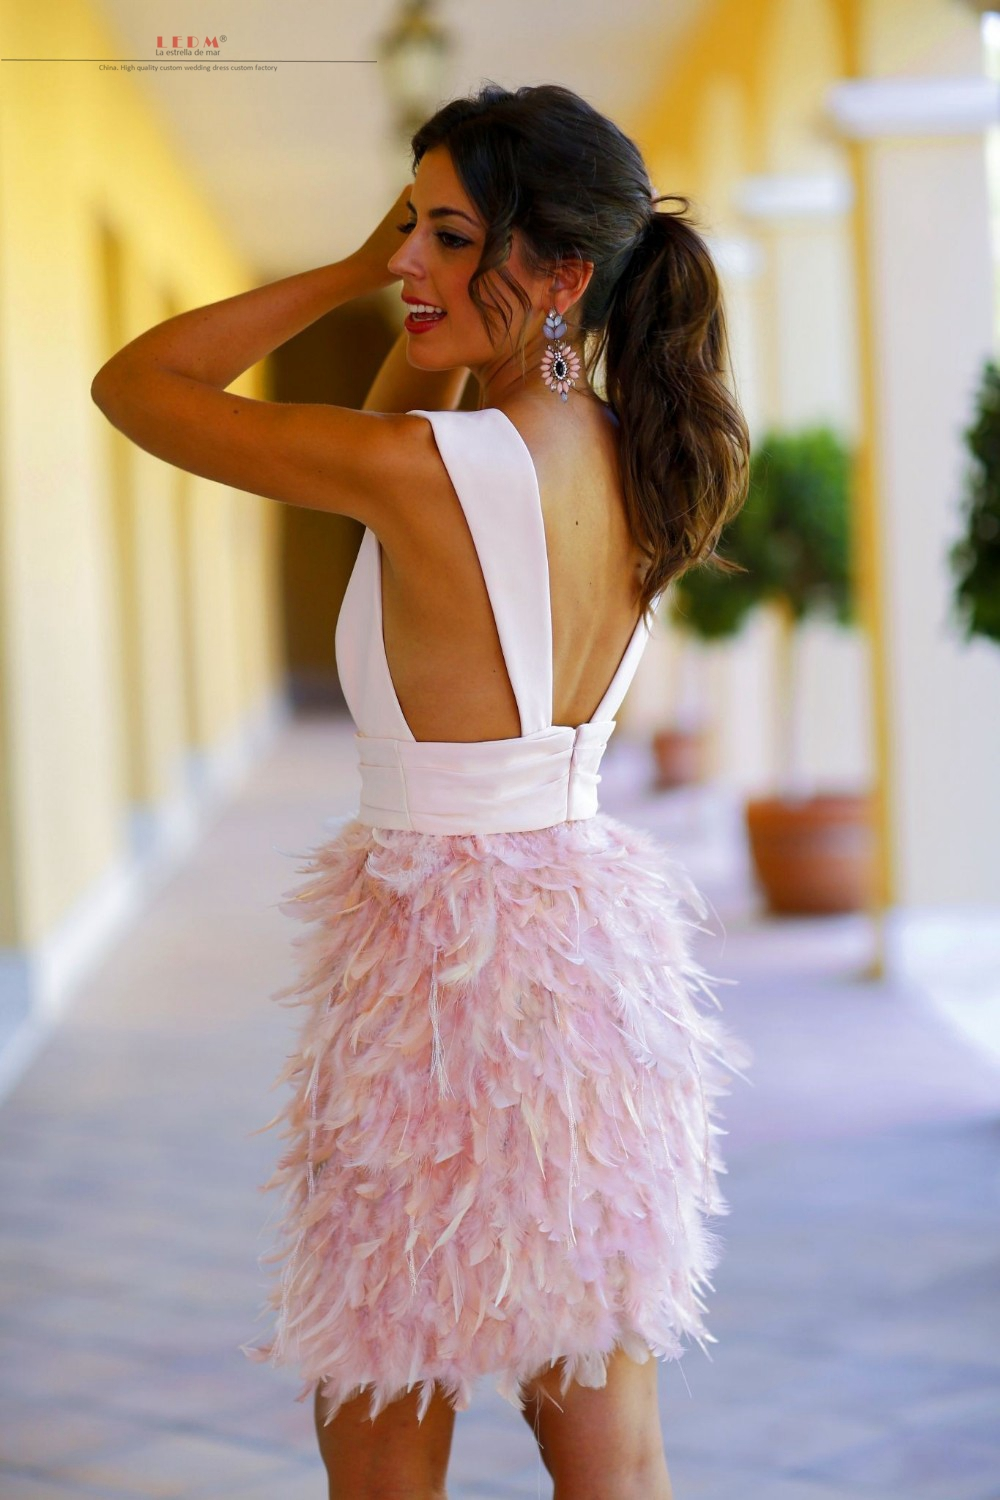 Robe cocktail2017 new sexy V neck back open fluffy pink feather cocktail  dresses short plus size gown party dress-in Cocktail Dresses from Weddings    Events ... 804f6b751